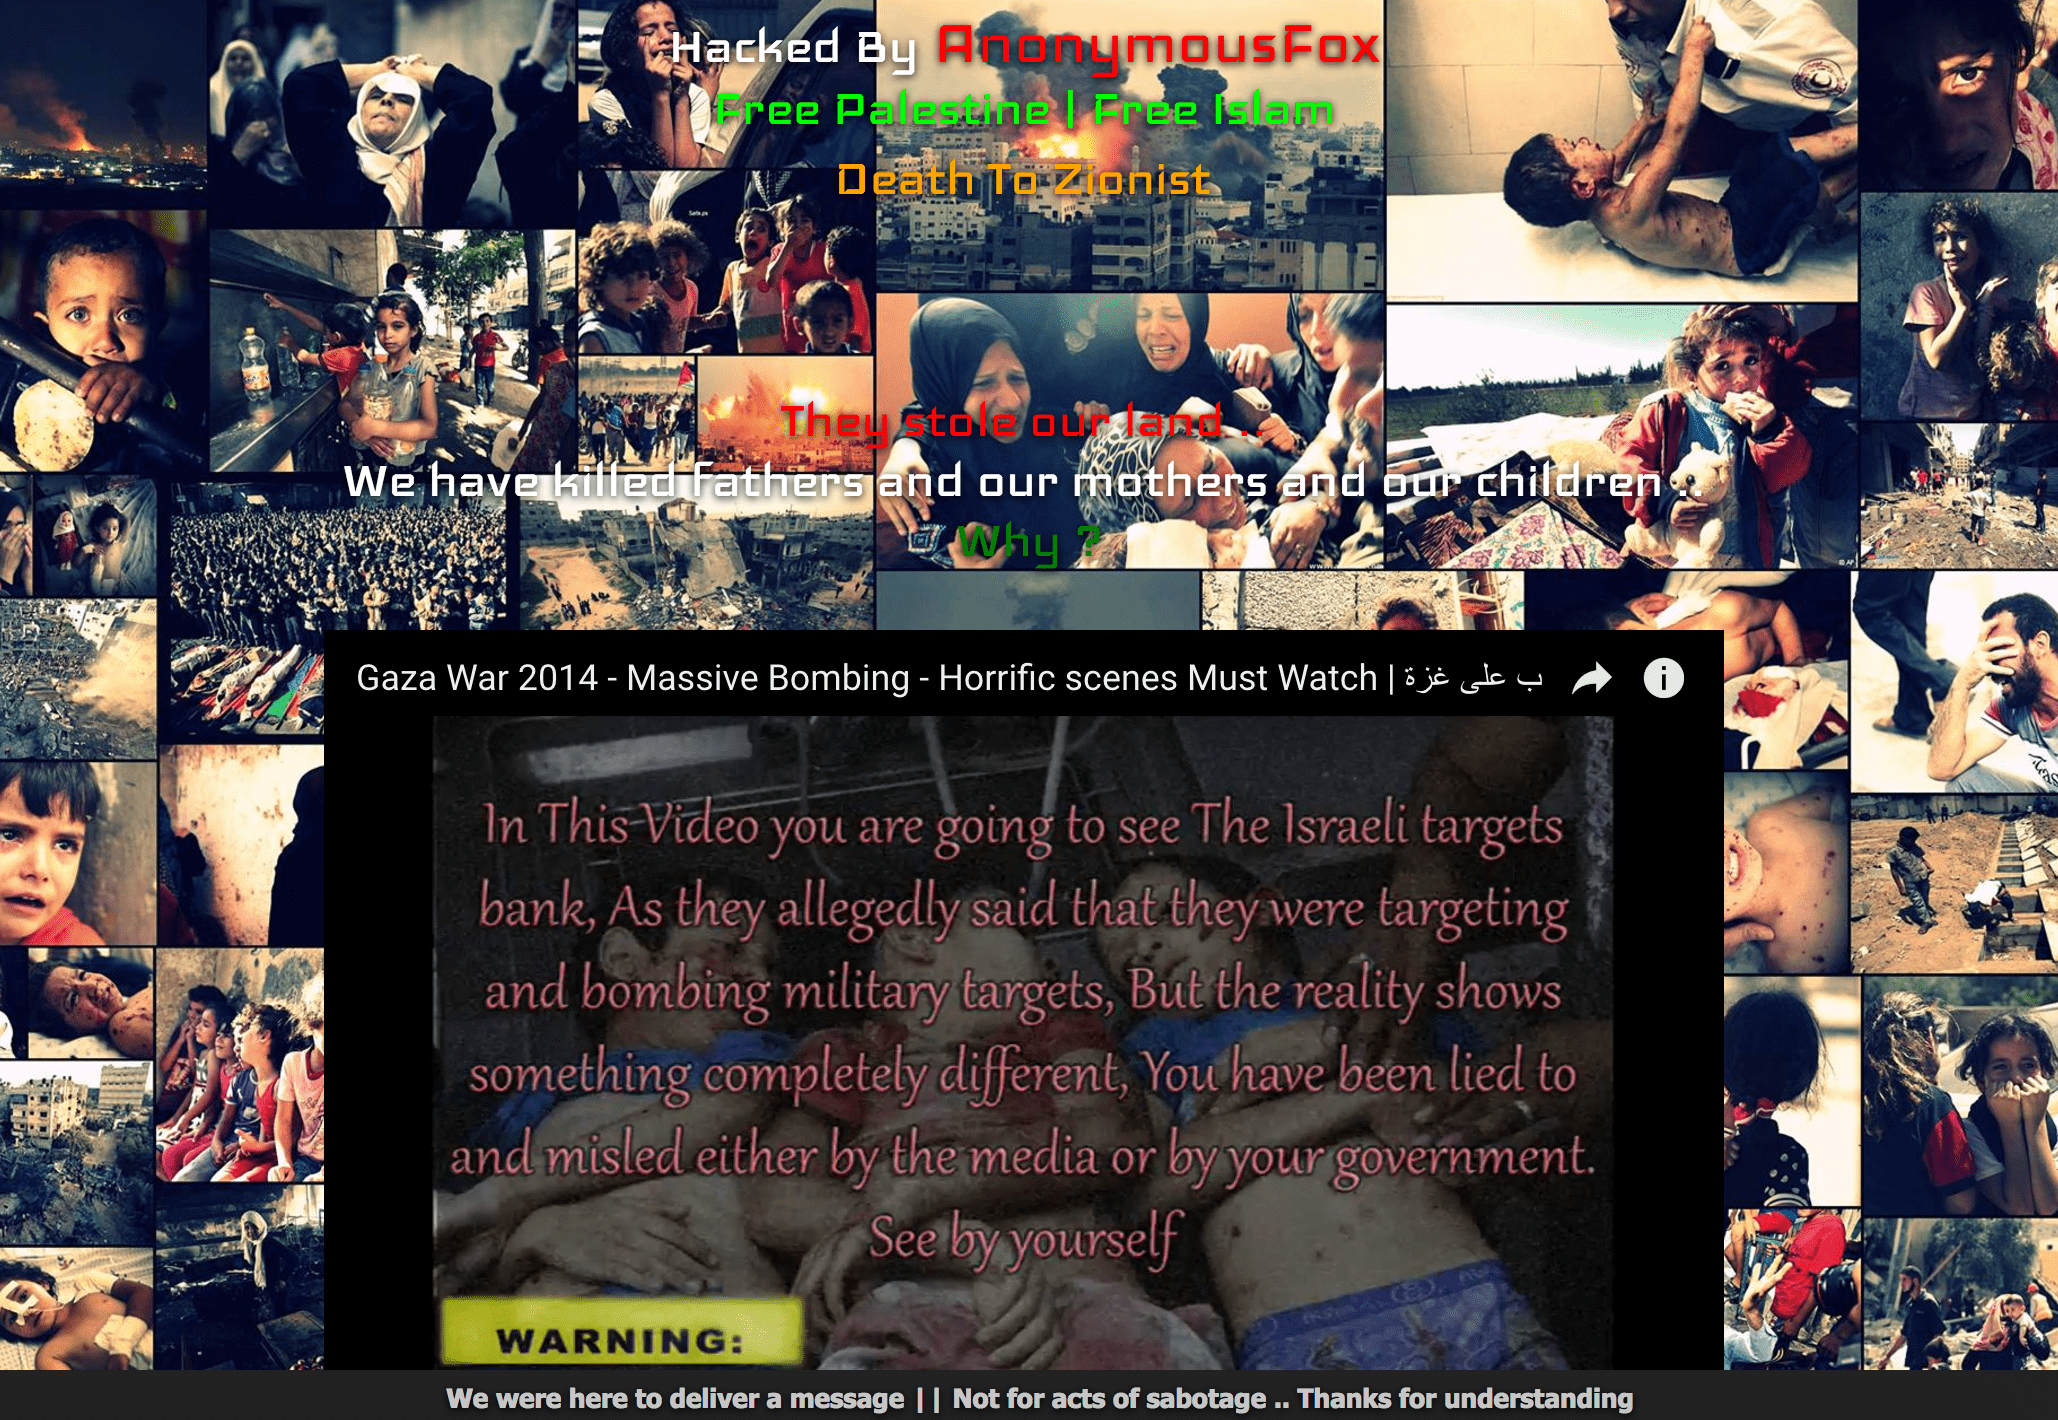 Screenshot of the deface page uploaded to all 82 websites on the Kazakhstan server hacked by AnonymousFox